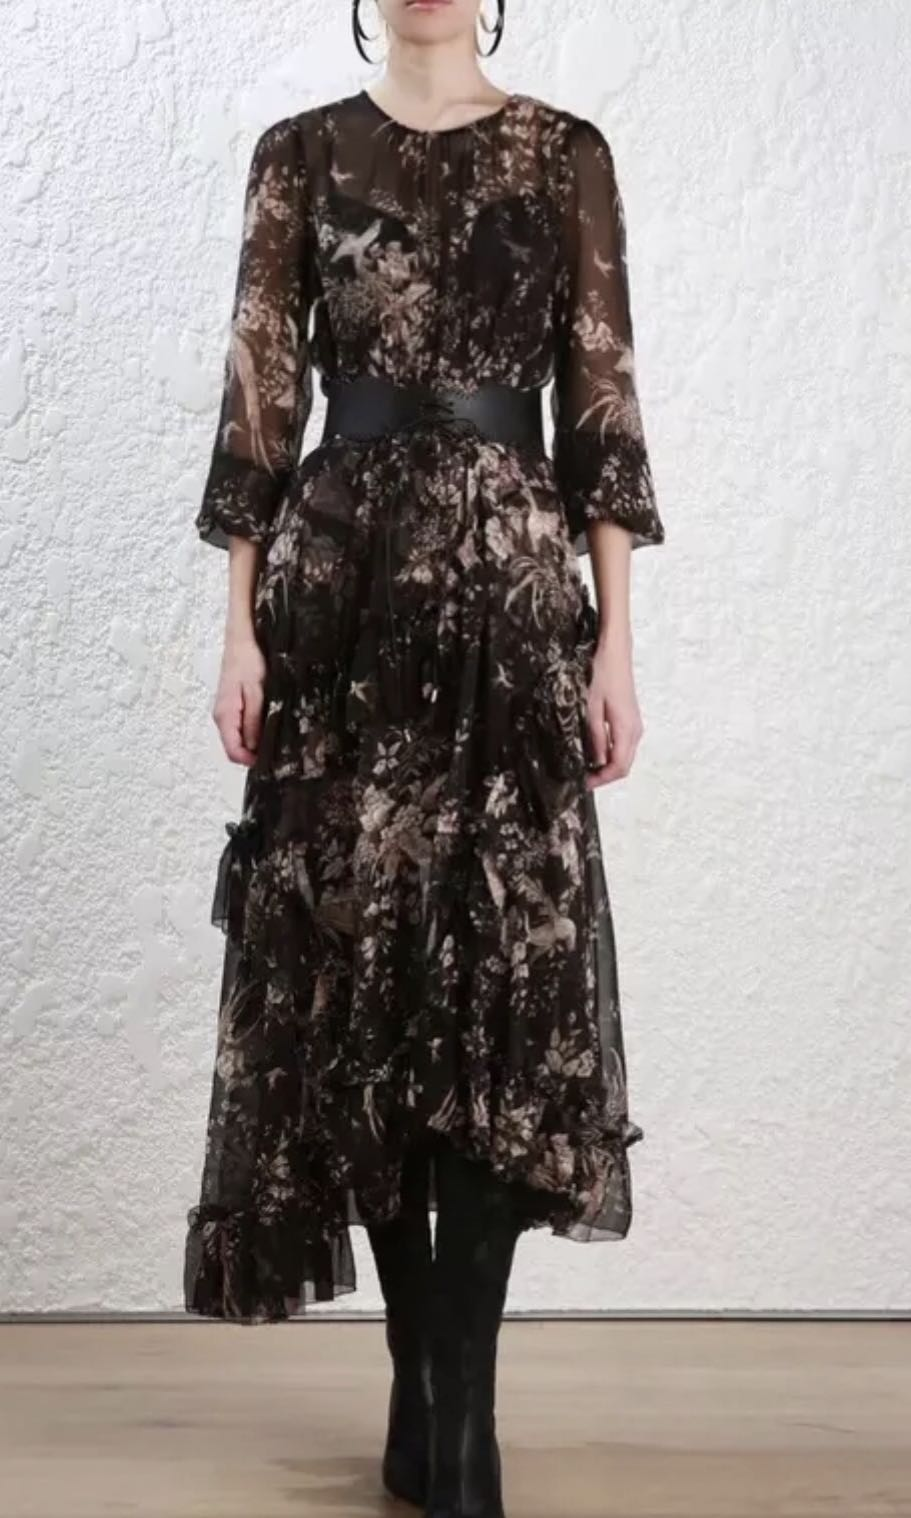 e5331b44dfa Authentic Zimmermann Maples Feathery Dress (SOLD OUT)